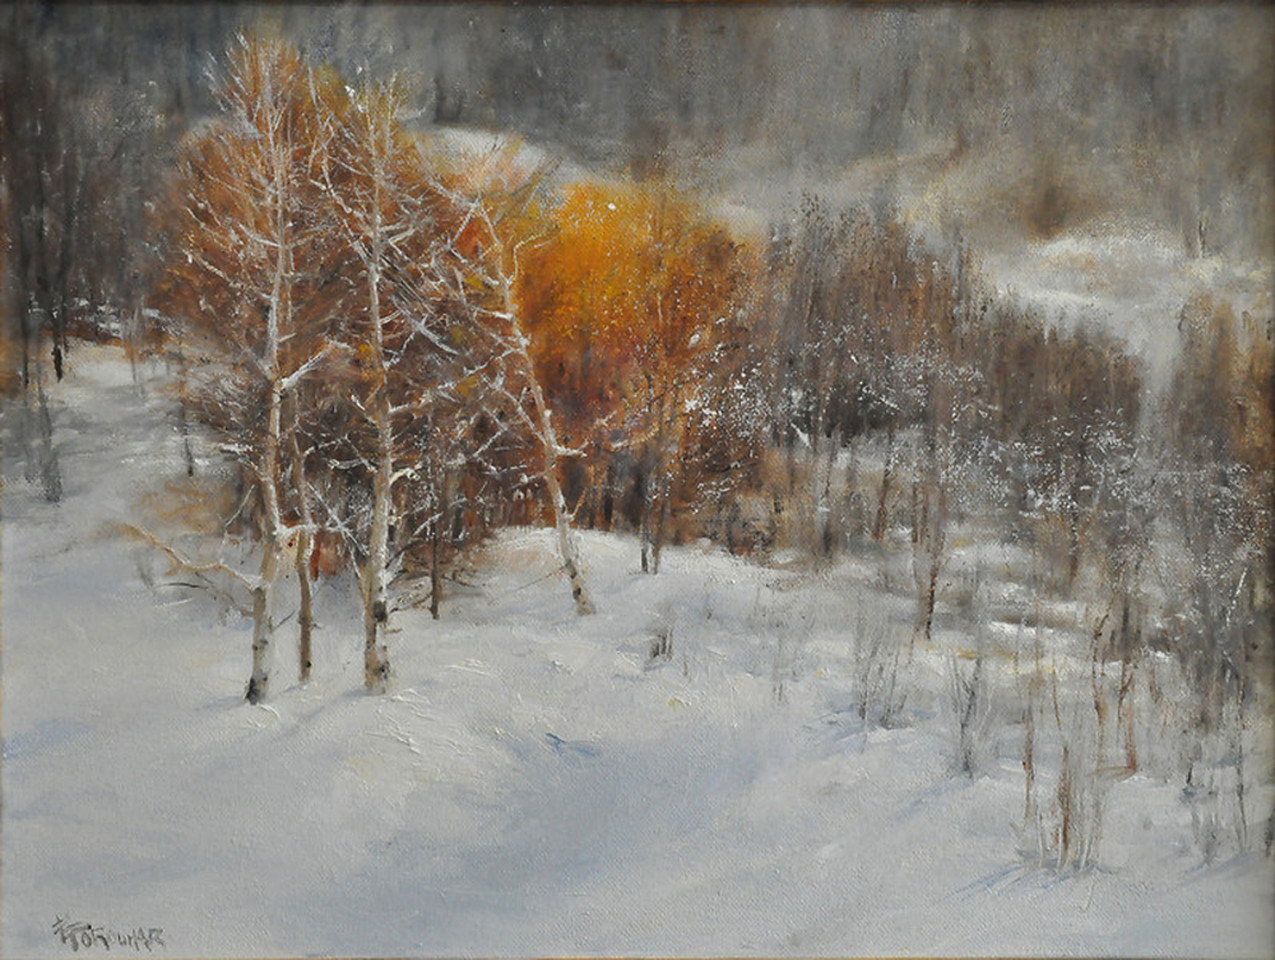 SOLD;  Morning Walk in Snow (Steam Boat CO) Oil on Linen 18x24 Awards: Finalist, 2013 Salon Exhibition, Art Renewal Center Meritorious Award for Landscape Painting Rockport Art Association, 2014.